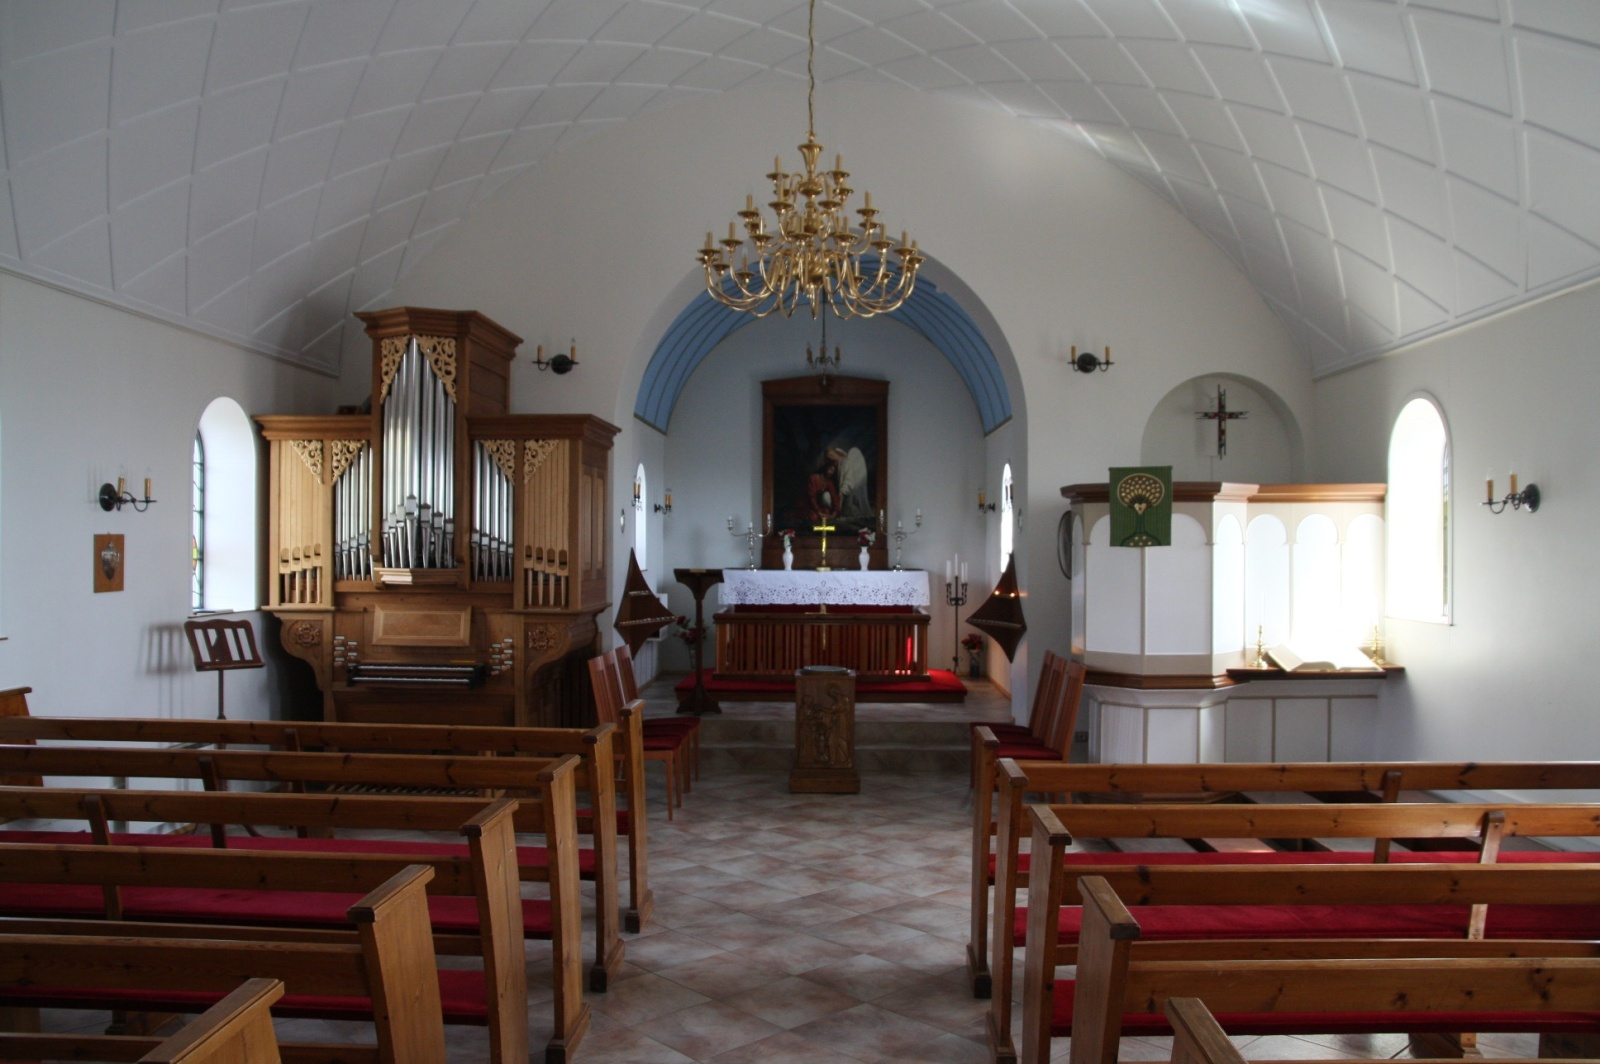 The interior of a small Icelandic lutheranian church